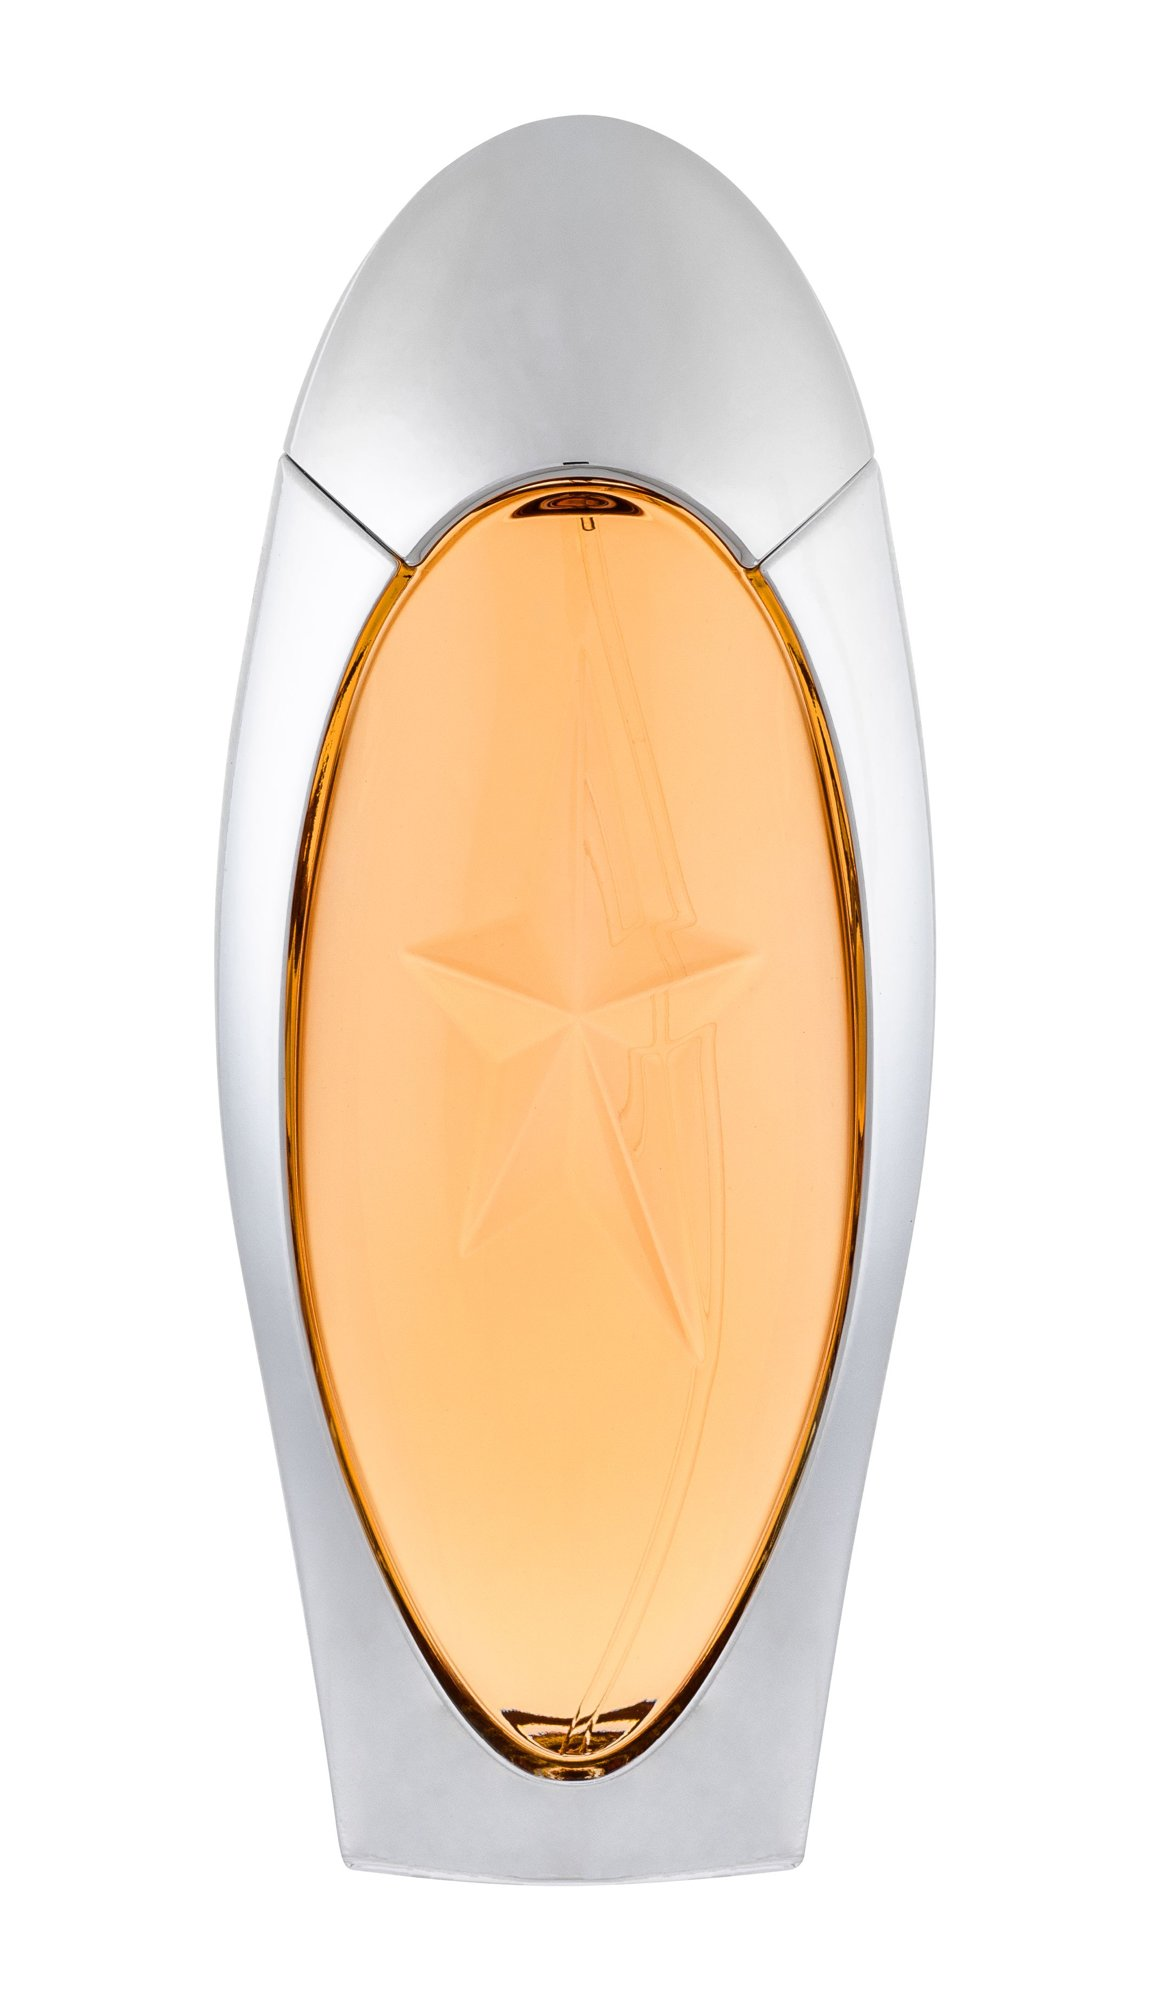 Thierry Mugler Angel Muse Eau de Parfum 100ml